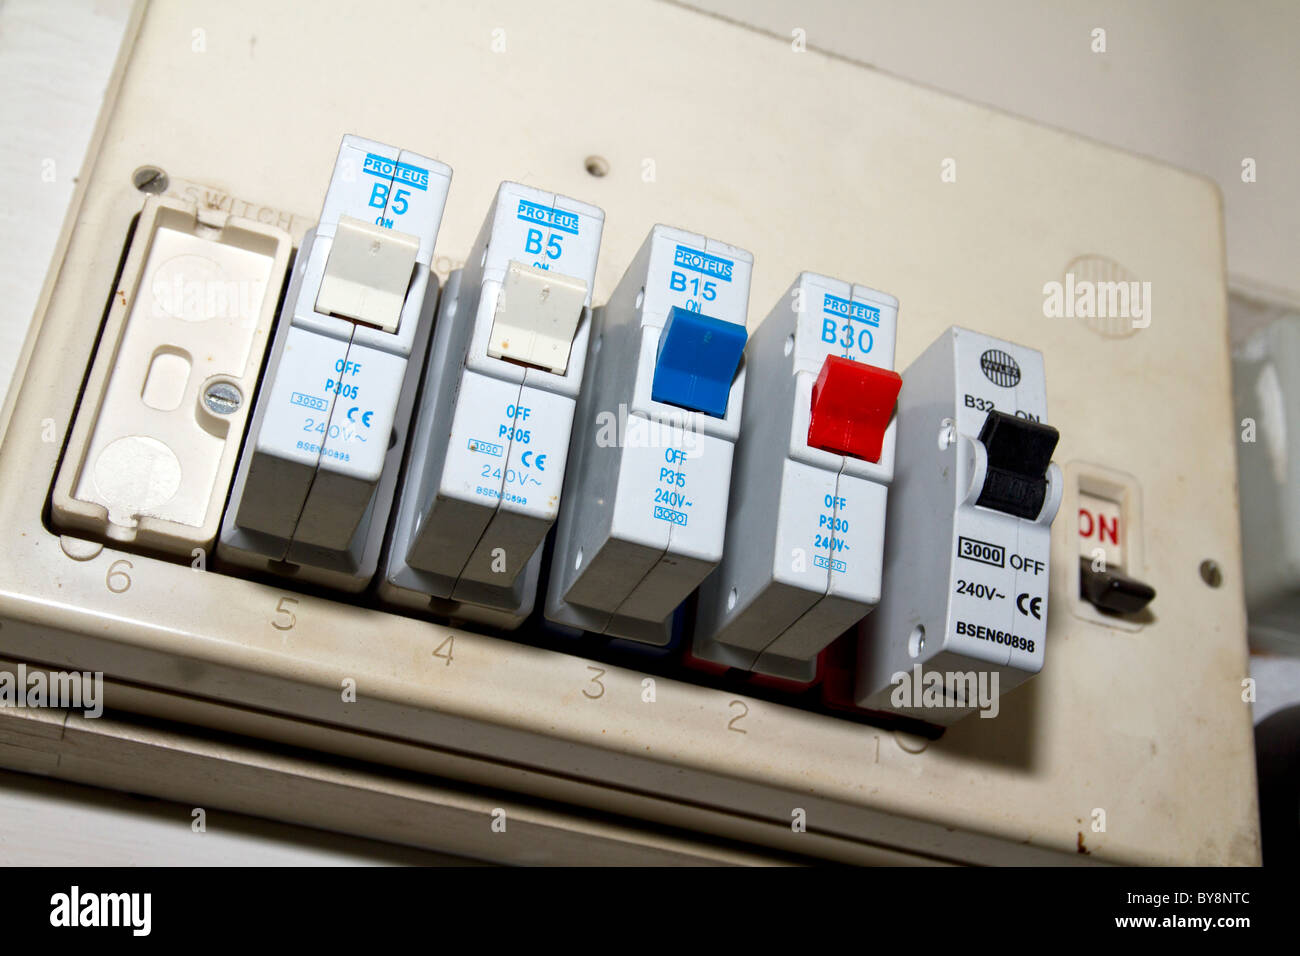 uk old electric fuse box in a london house stock photo 33998844 rh alamy com house fuse box wiring house fuse box replacement